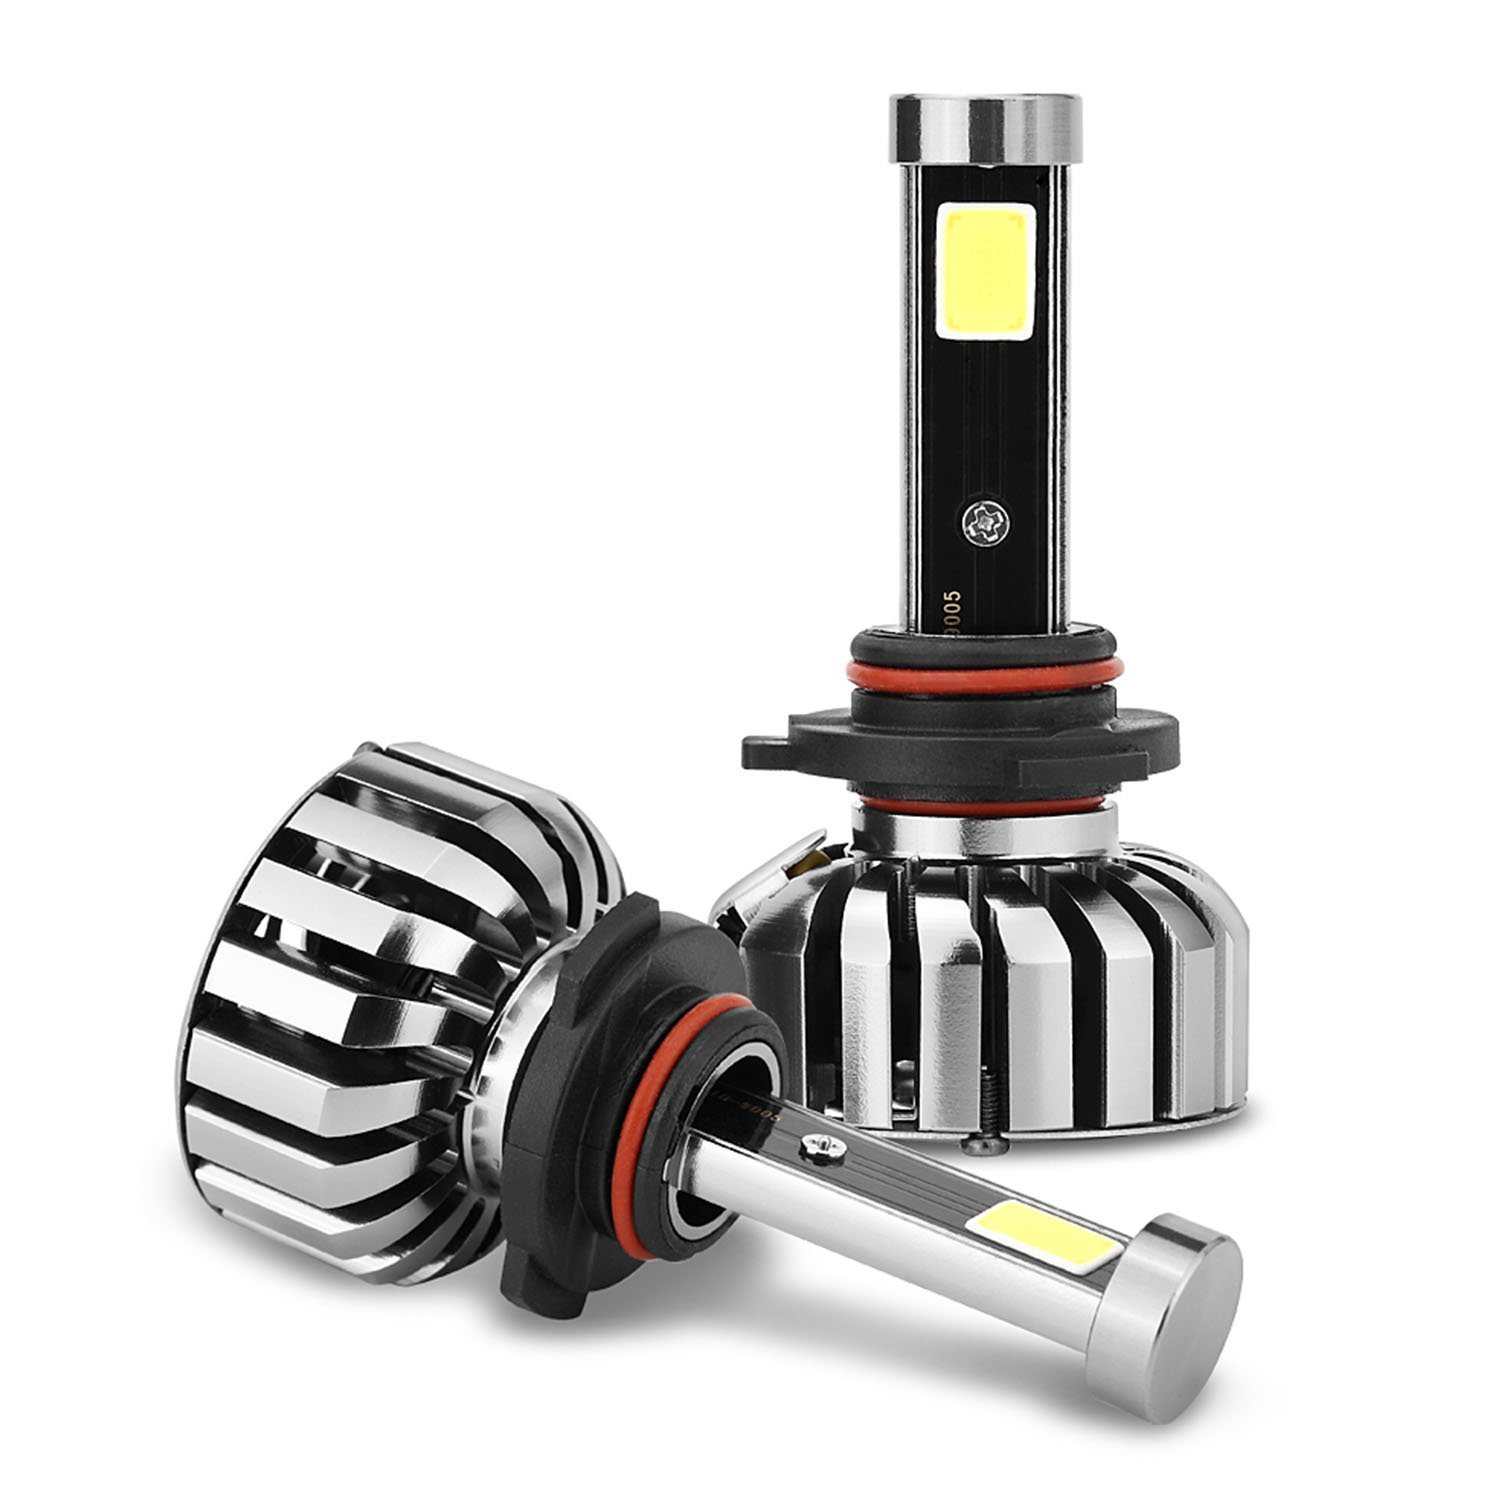 1 Pair N7 80W 8000LM Waterproof COB Car LED Headlight Head Light Bulbs Replacement Kit with High Brightness Plug And Play for HB3 9005 H10